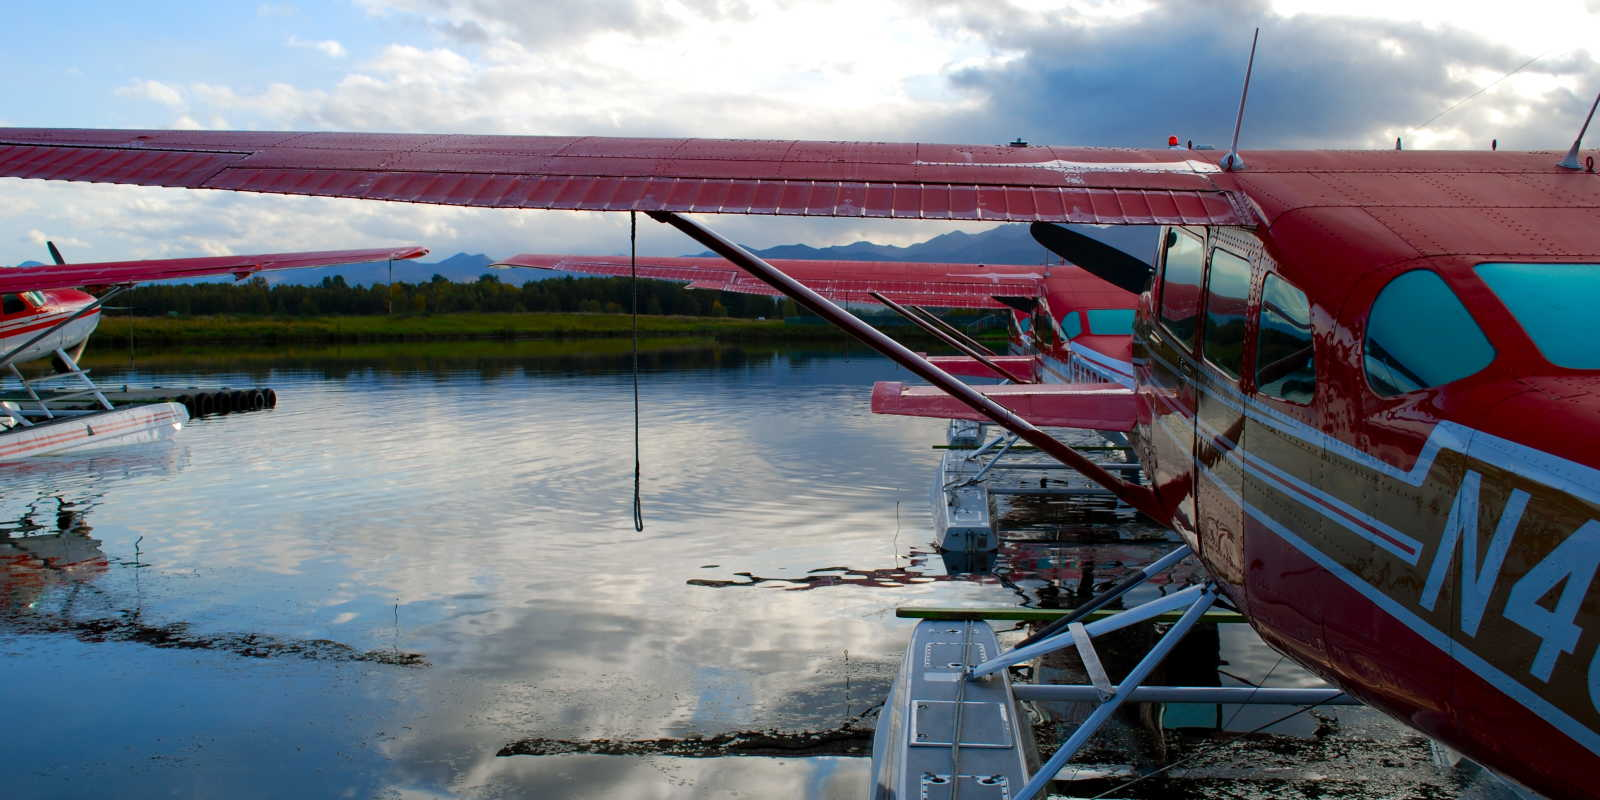 Floatplanes at Lake Hoods wait for sightseeing flights